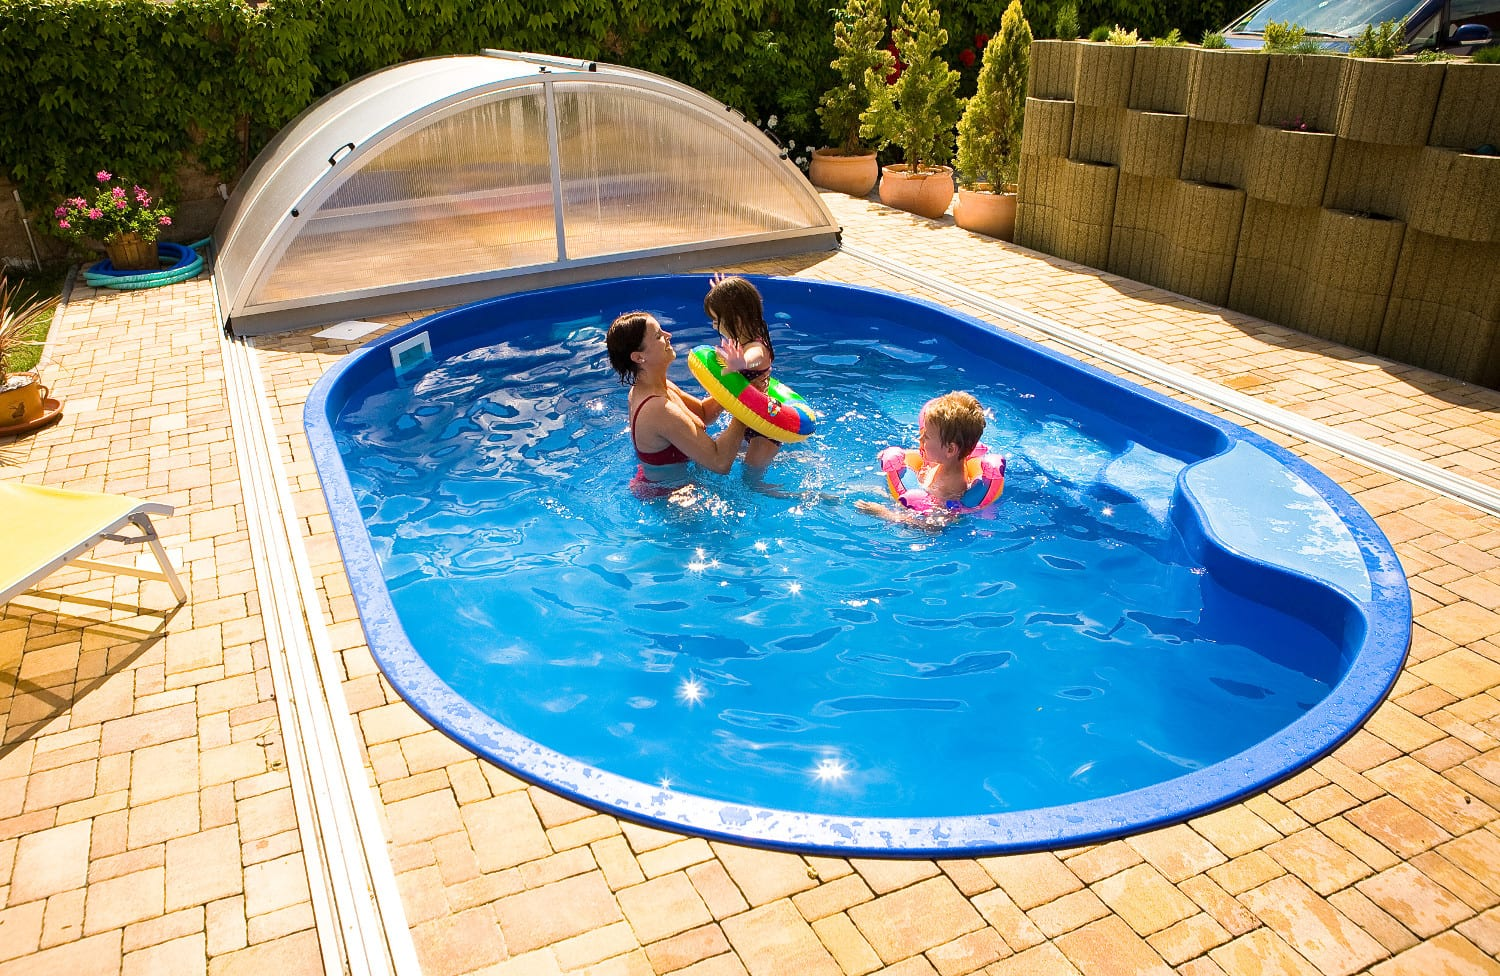 Olymp 4.50m X 3.00m X 1.20m One Piece Fibreglass Pool